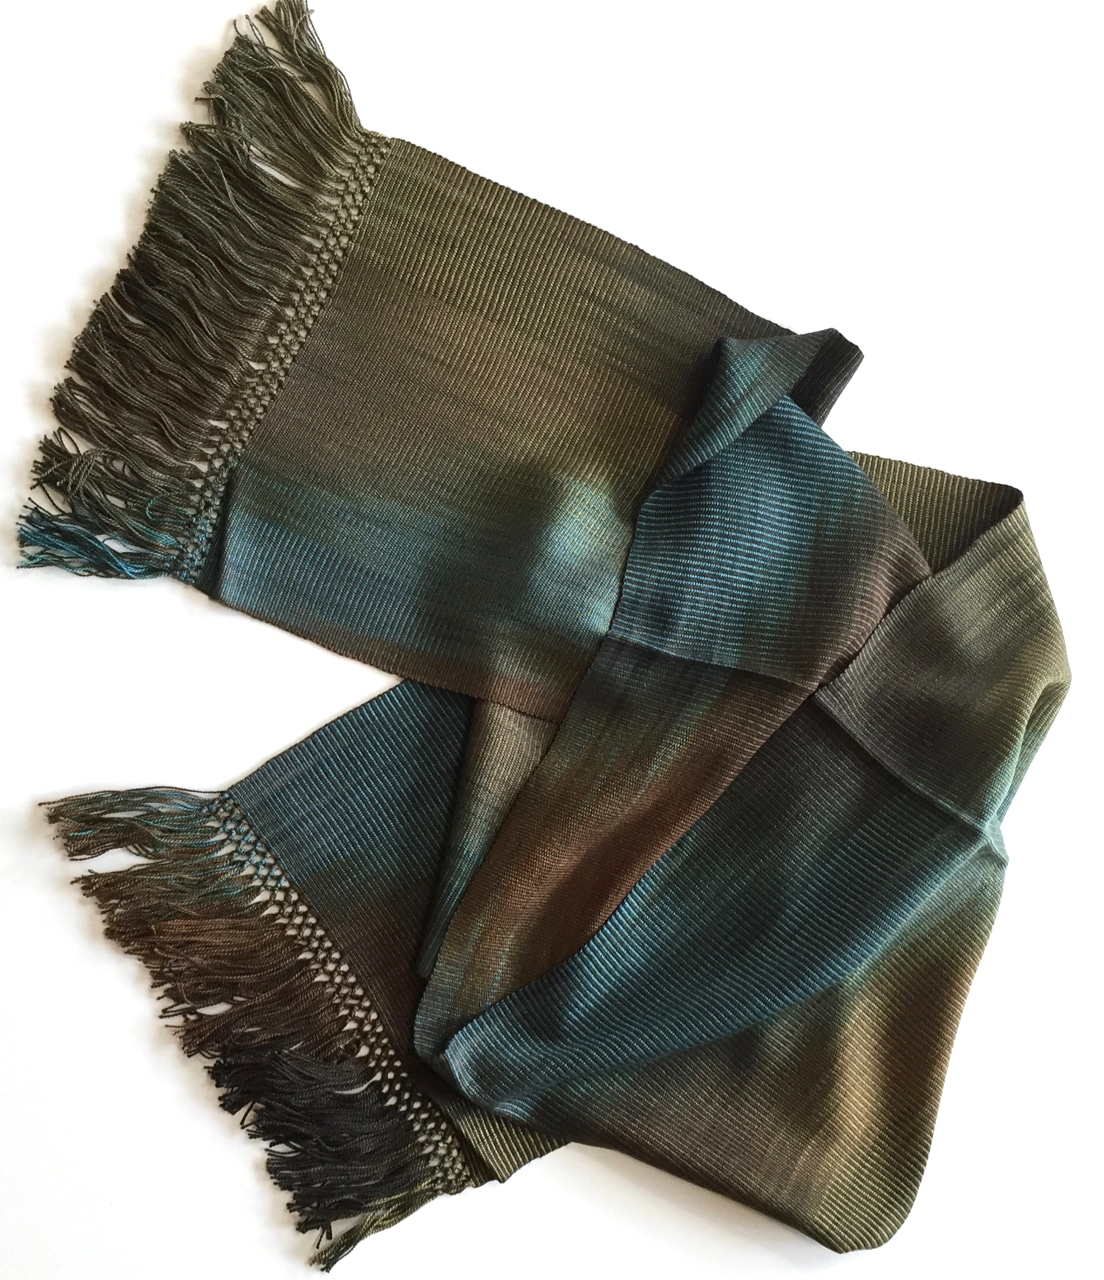 Browns, Turquoise - Lightweight Bamboo Handwoven Scarf 8 x 68